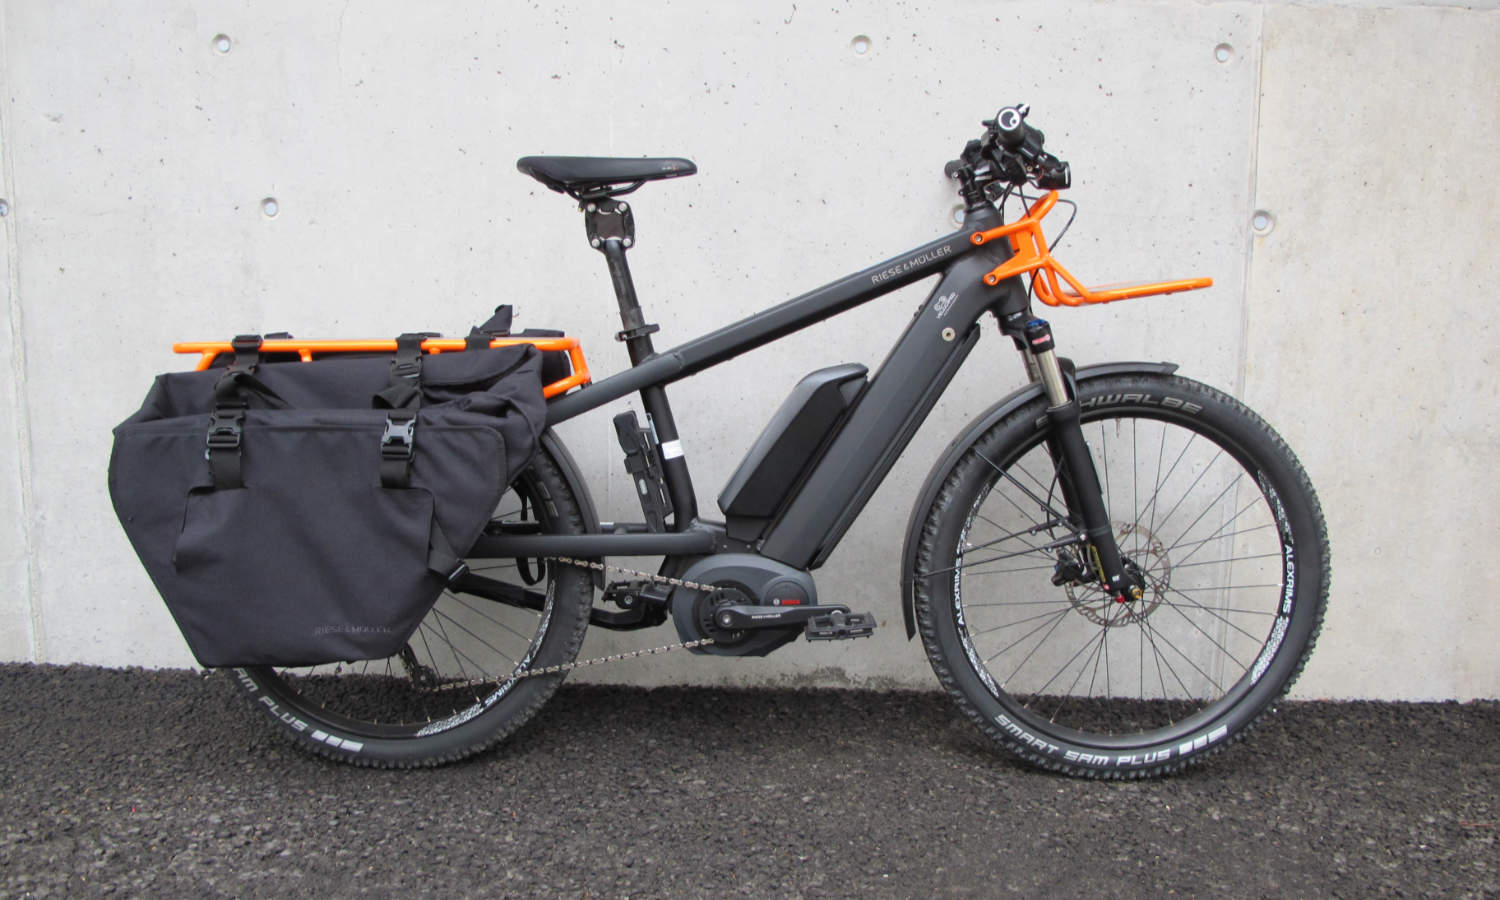 Riese und Müller Multicharger GX touring